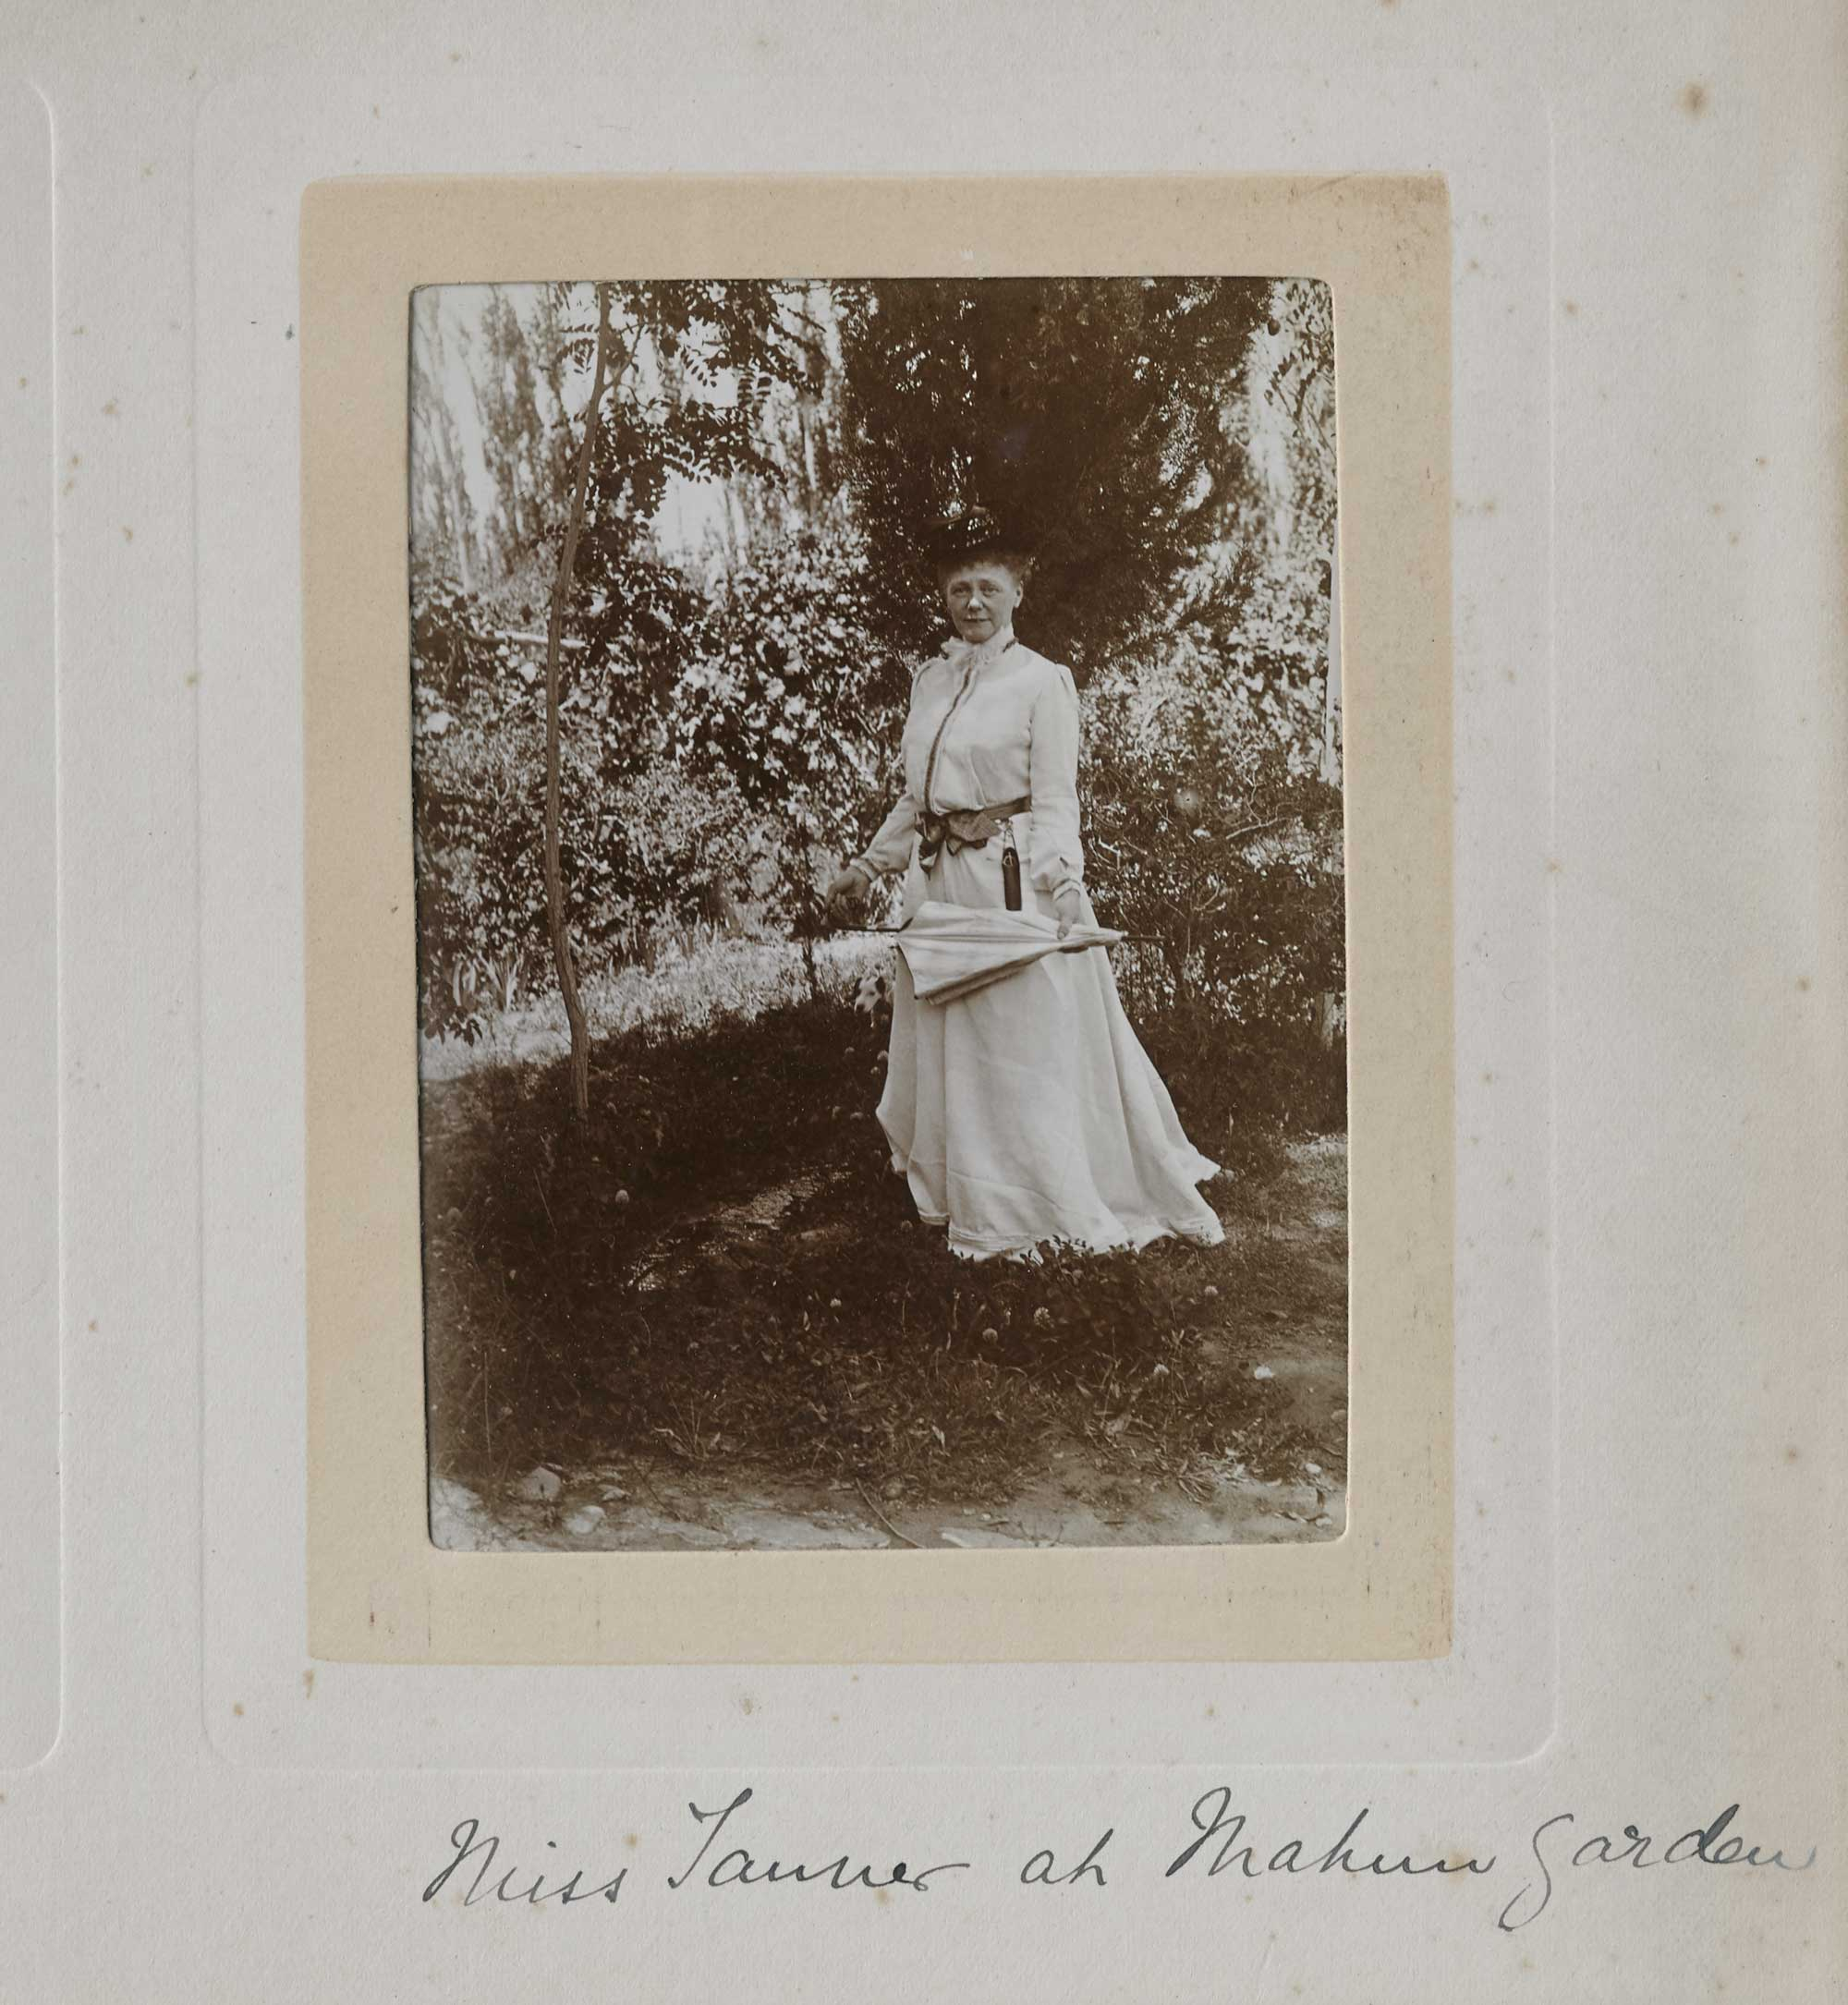 a photo of a woman in Victorian dress in a garden with a folded umbrella